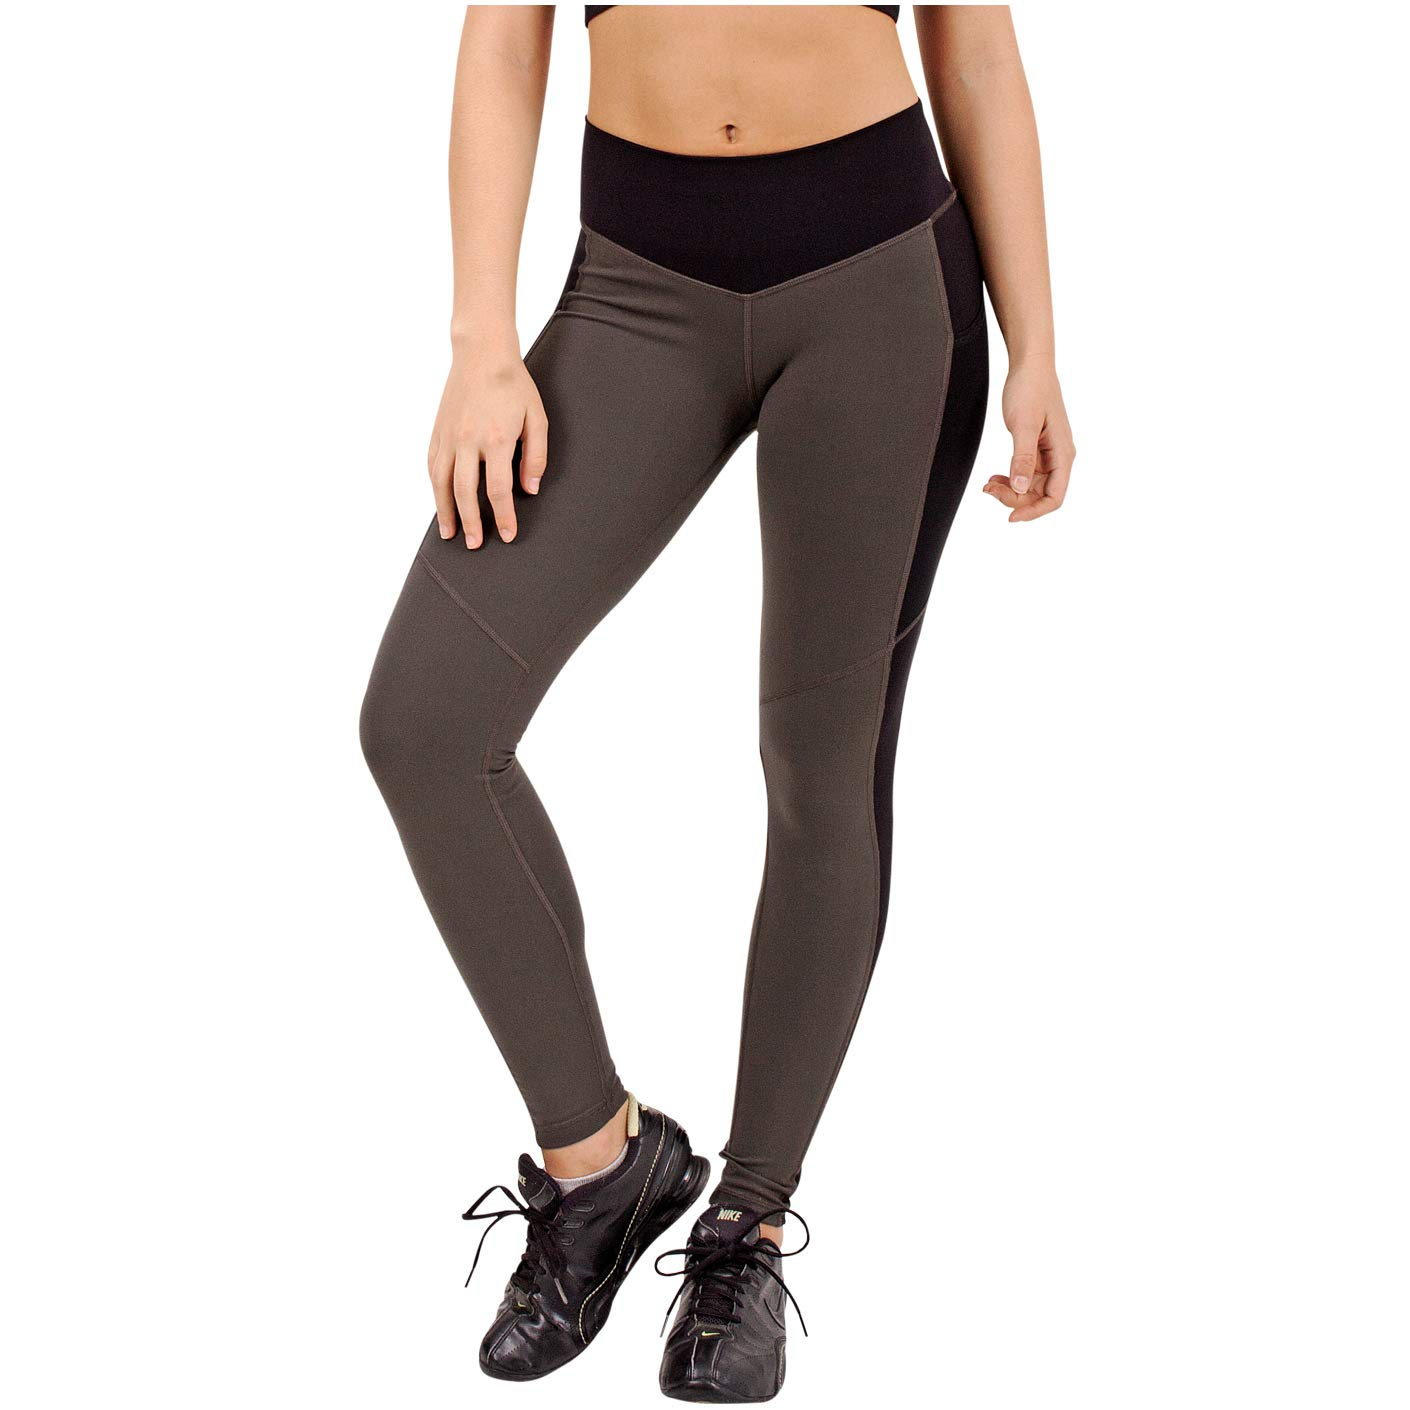 Flexmee 946072 Leggings Solido at Amazon Womens Clothing store